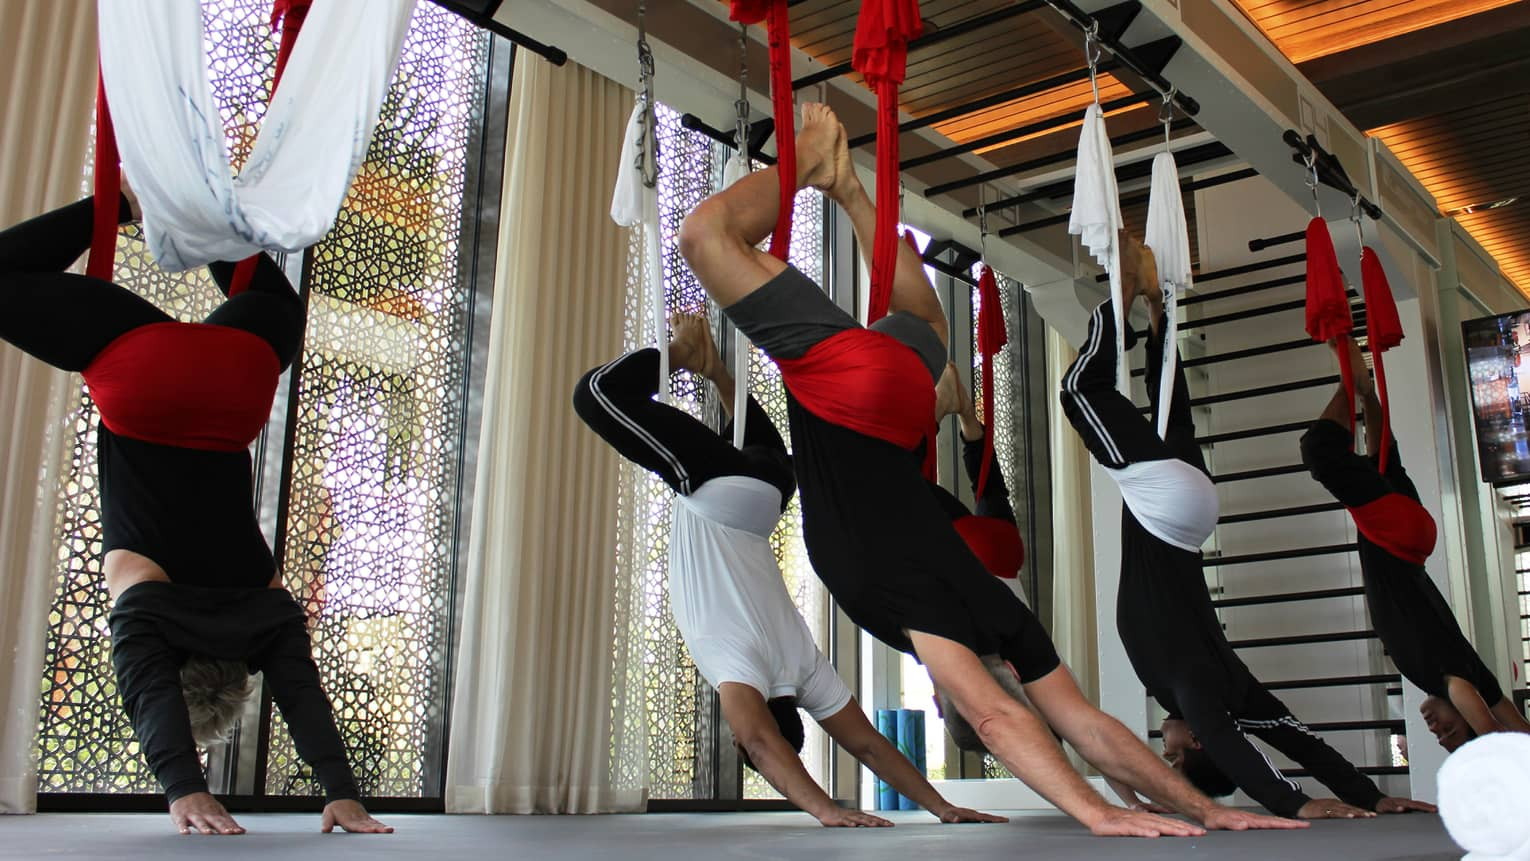 Fitness class, people hanging upside-down from red and white yoga hammocks